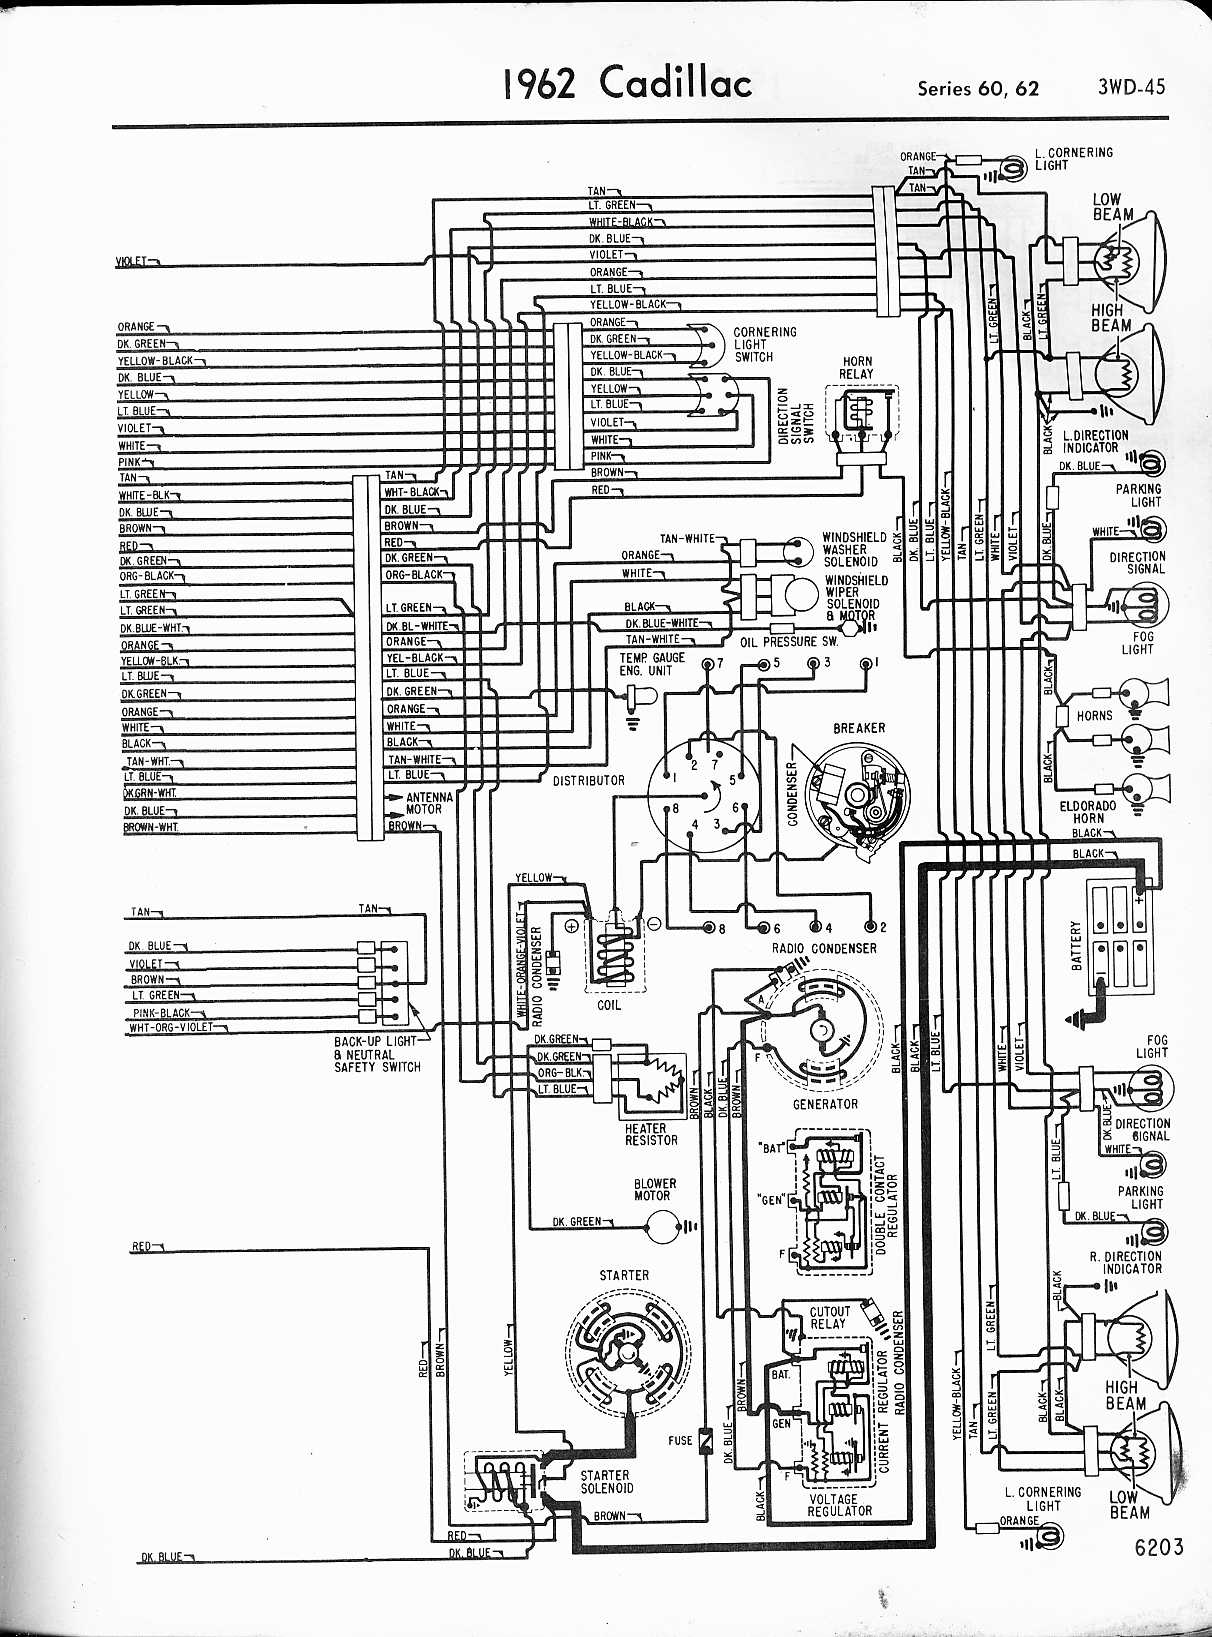 cadillac wiring diagrams: 1957-1965 1957 jeepster wiring diagram 1957 cadillac wiring diagram